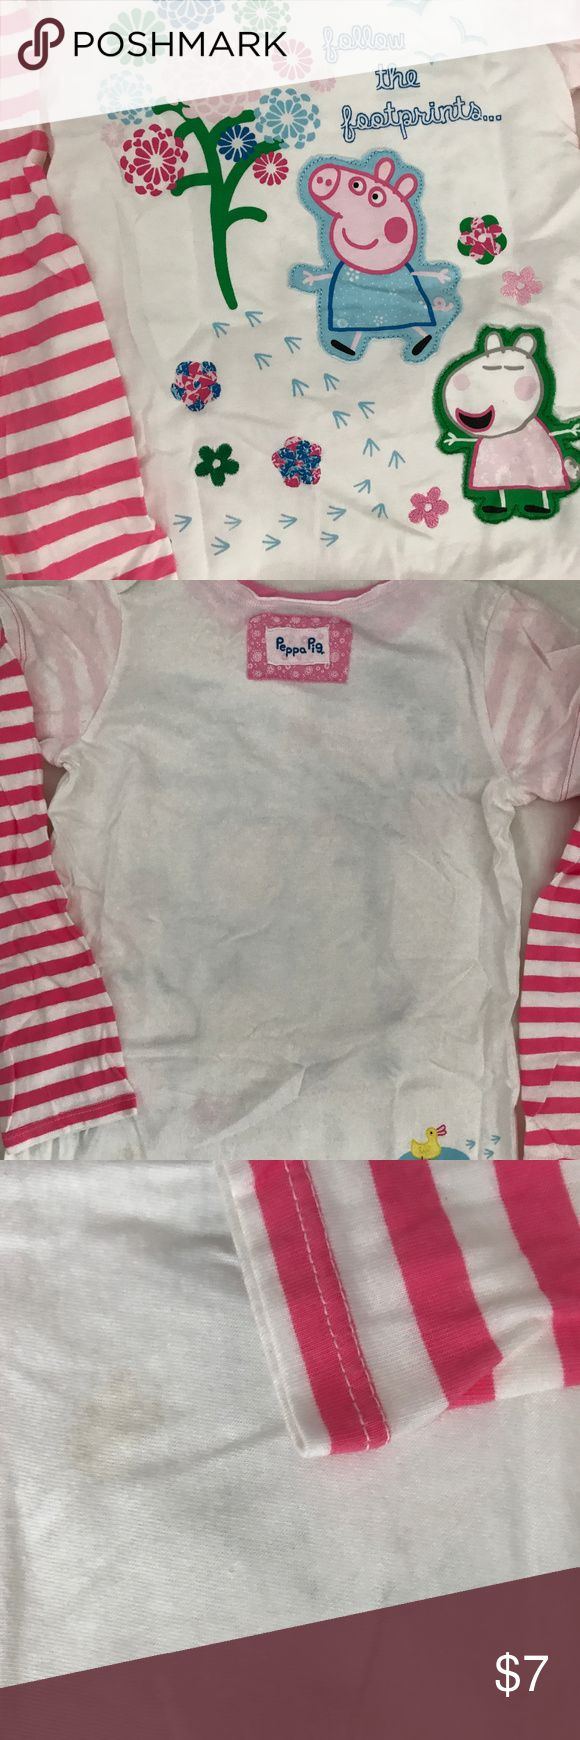 Peppa Pig applique shirt by Marks & Spencer 6 7 It's a short sleeve over long sleeve layered t-shirt.  The long sleeves are a bubblegum pink and white stripe.  It's printed with flowers, a tree and little footprints that lead around the shirt to a little duck.  There are appliques of Peppa & Suzy Sheep.  The size is 6-7.  It's in very good condition.  There is a tiny yellow dot on Peppa's ear, and there's a small stain on the inside of the back that slightly can be seen through the shirt…